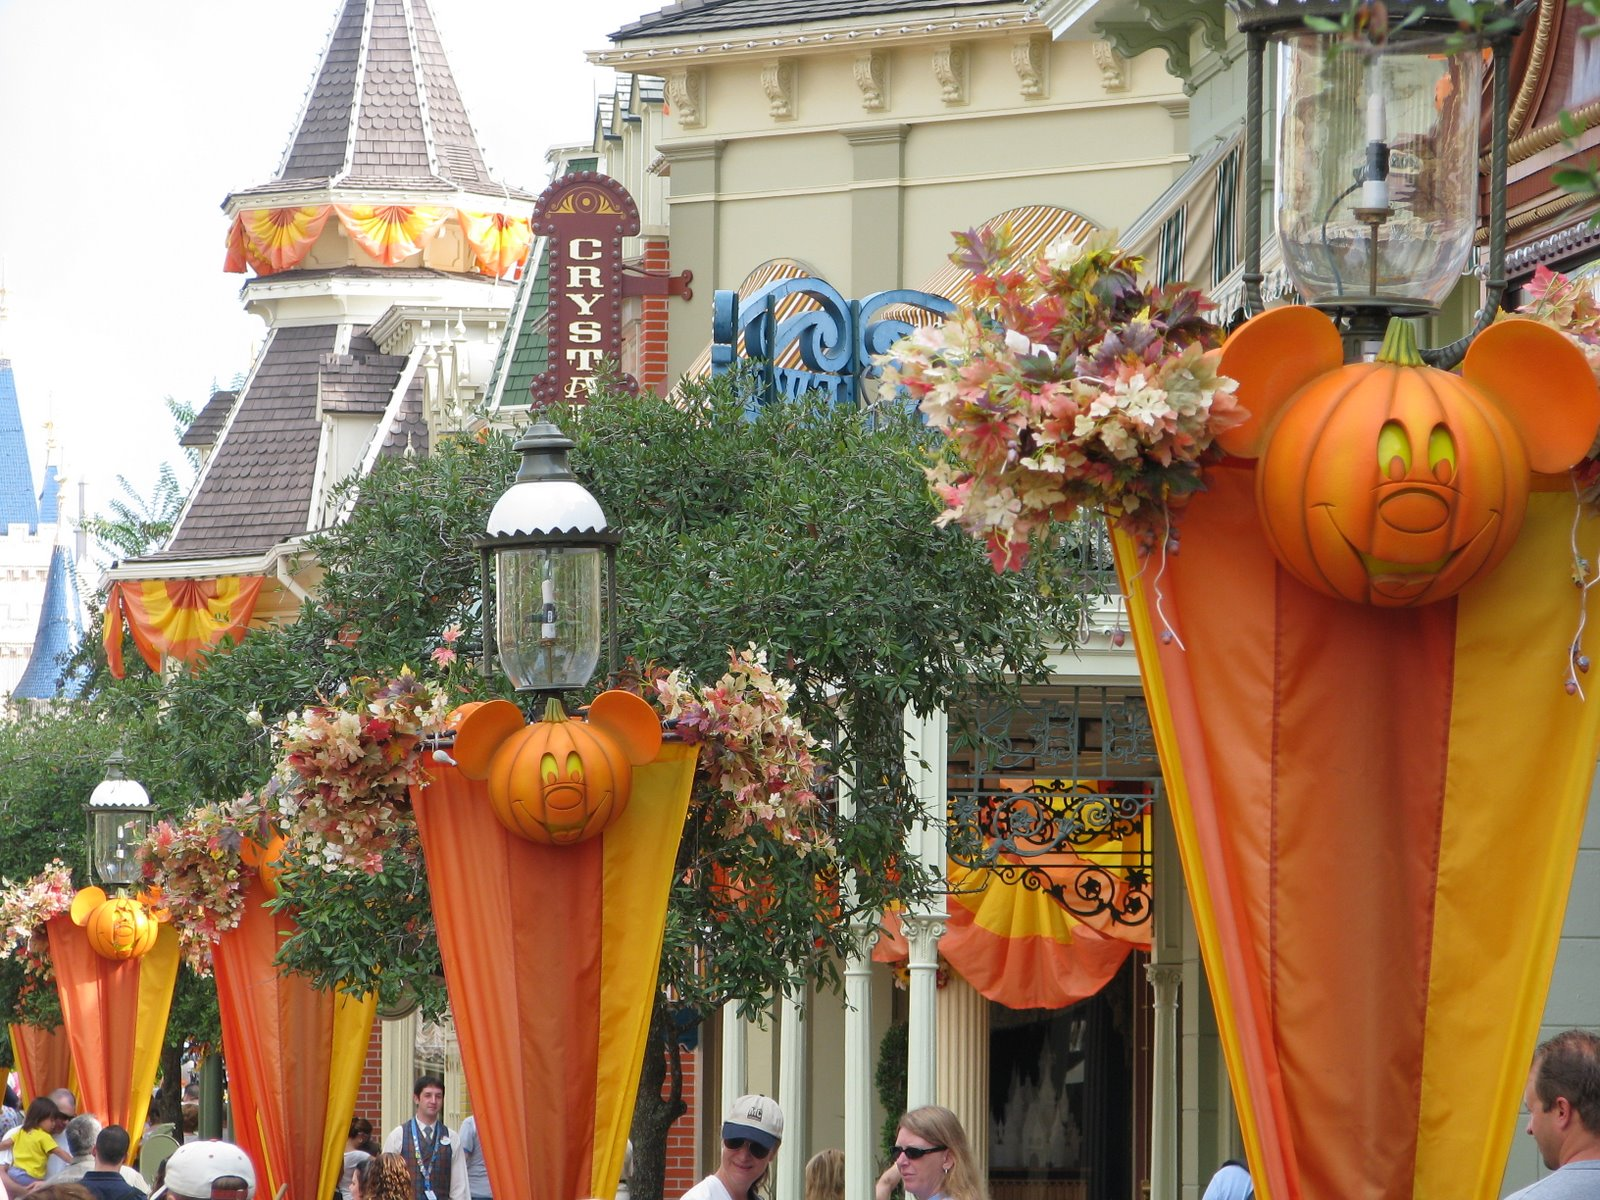 and of course with fall comes halloween which disney is already fully prepared for since they are already in the midst of their mickeys not so scary